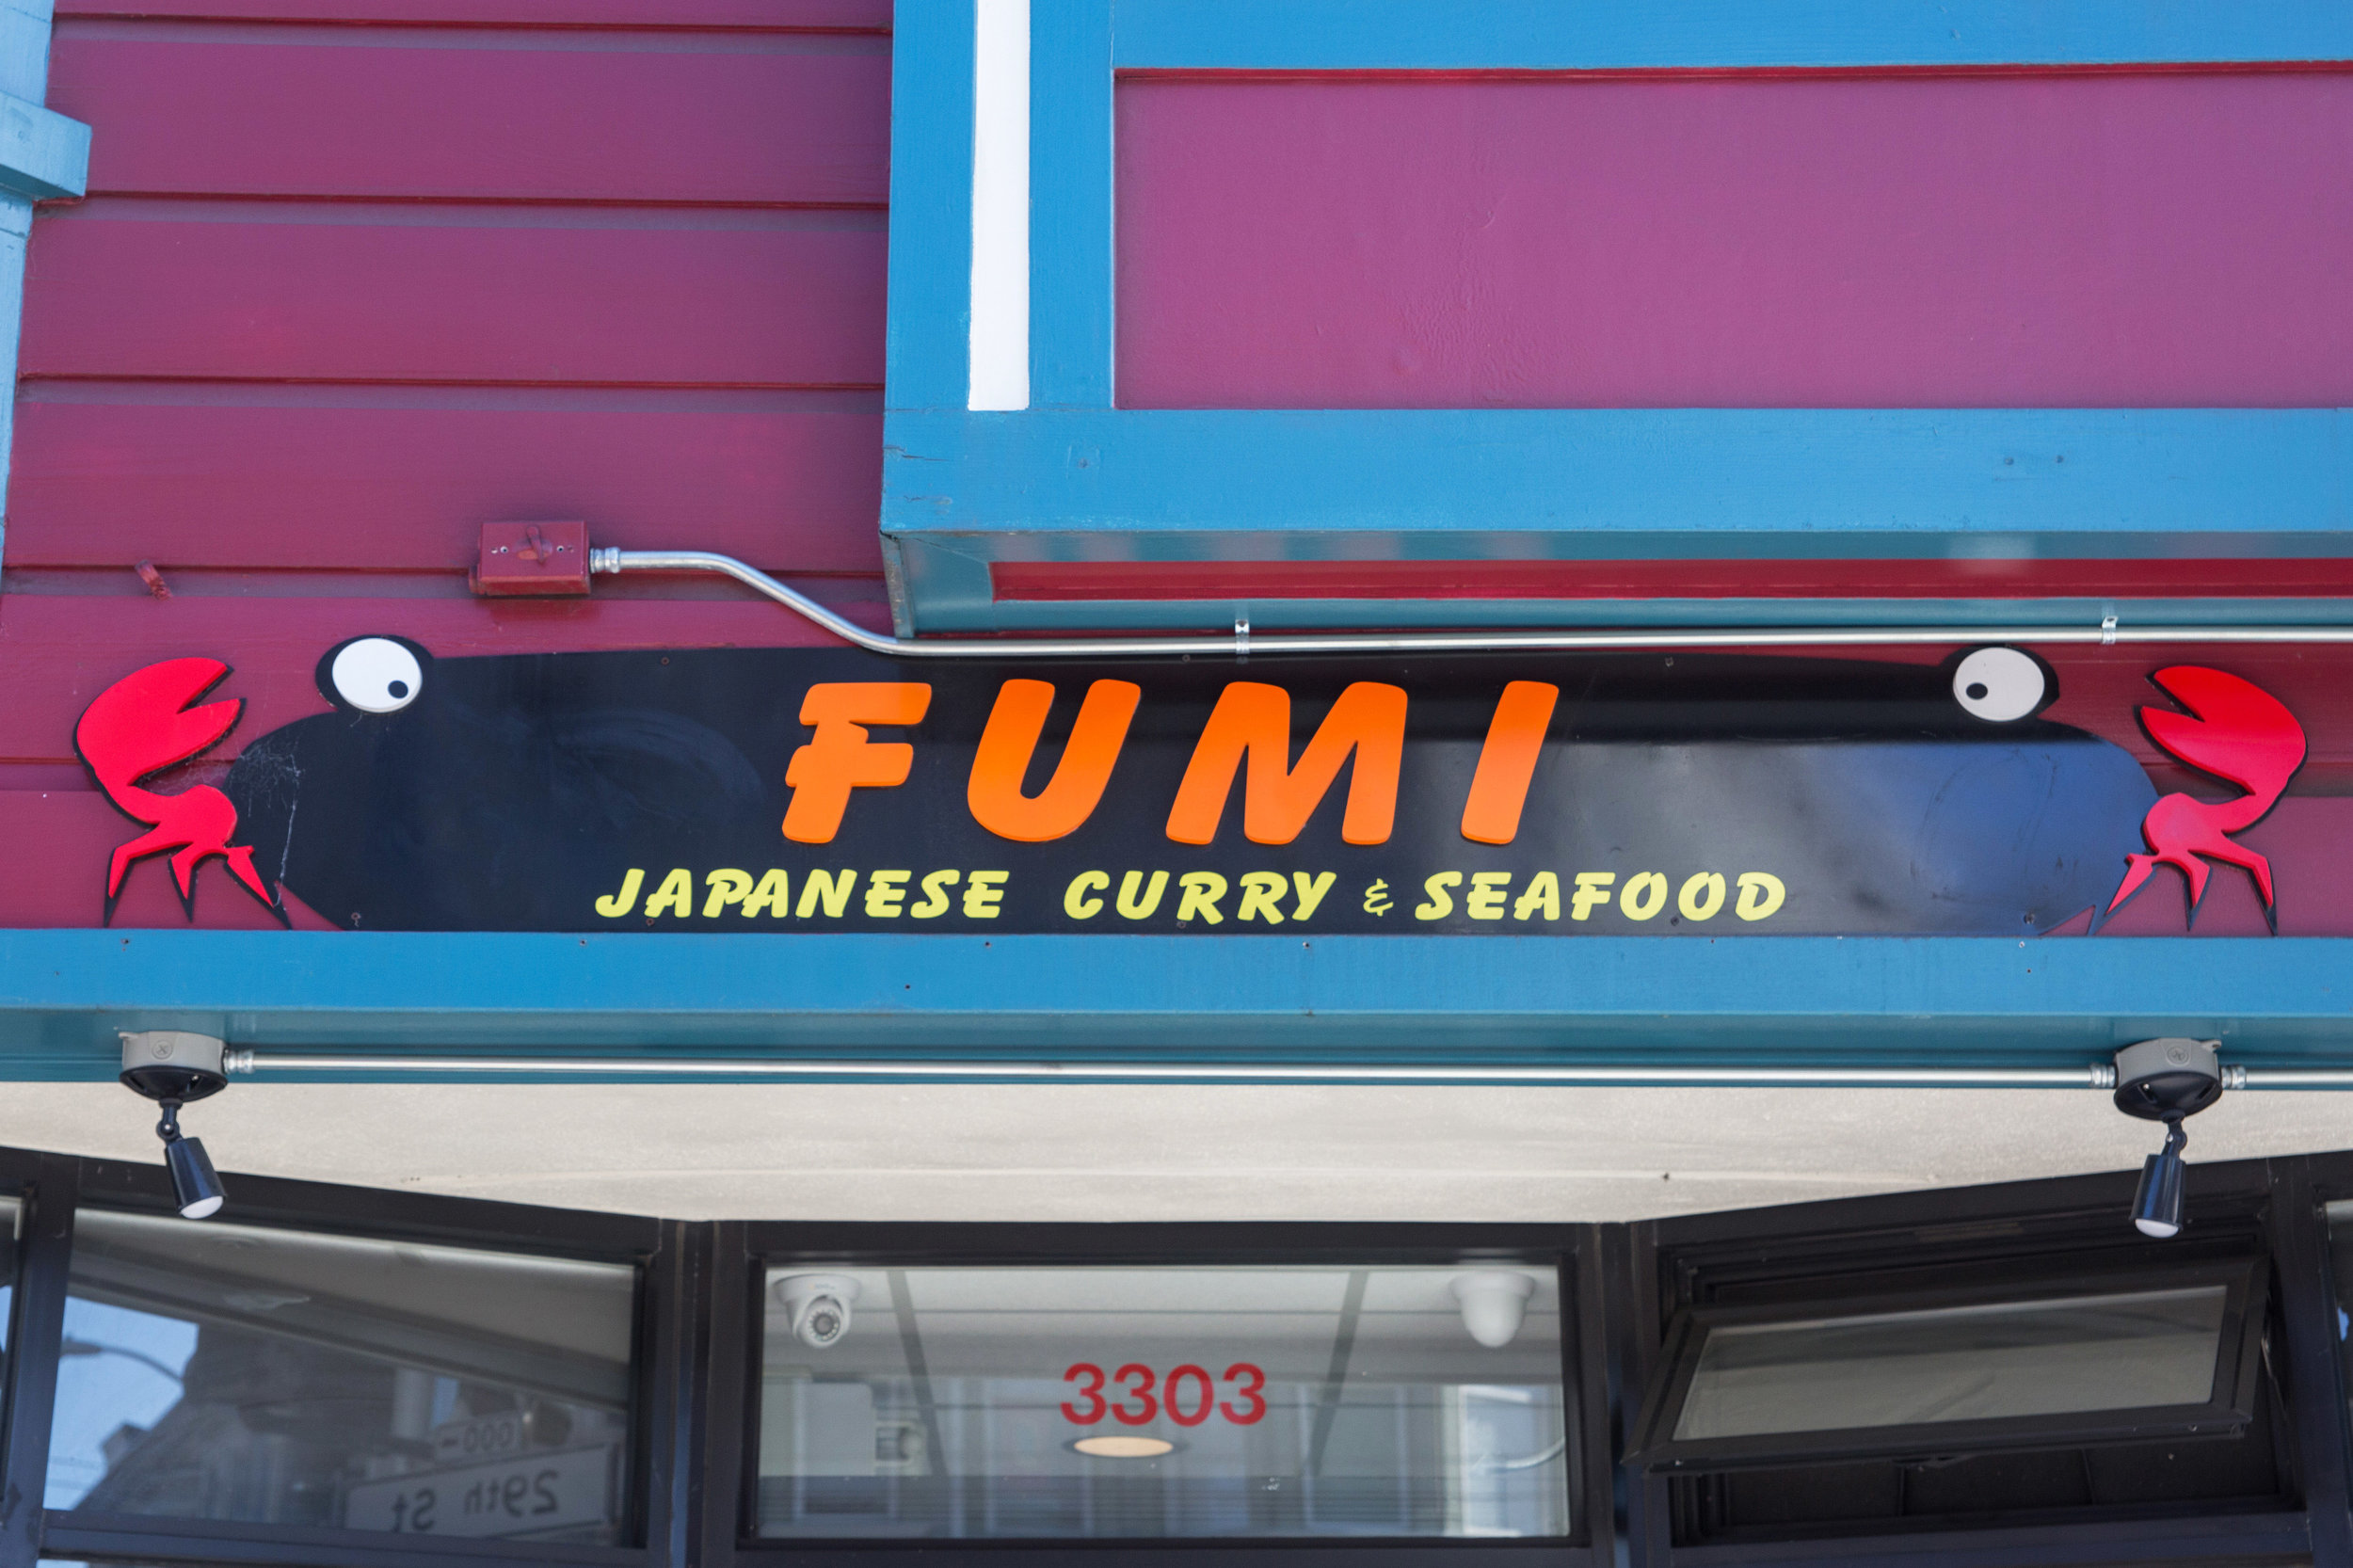 FUMI CURRY & RAMEN  - 3303 MISSION STREET - 415.757.0901